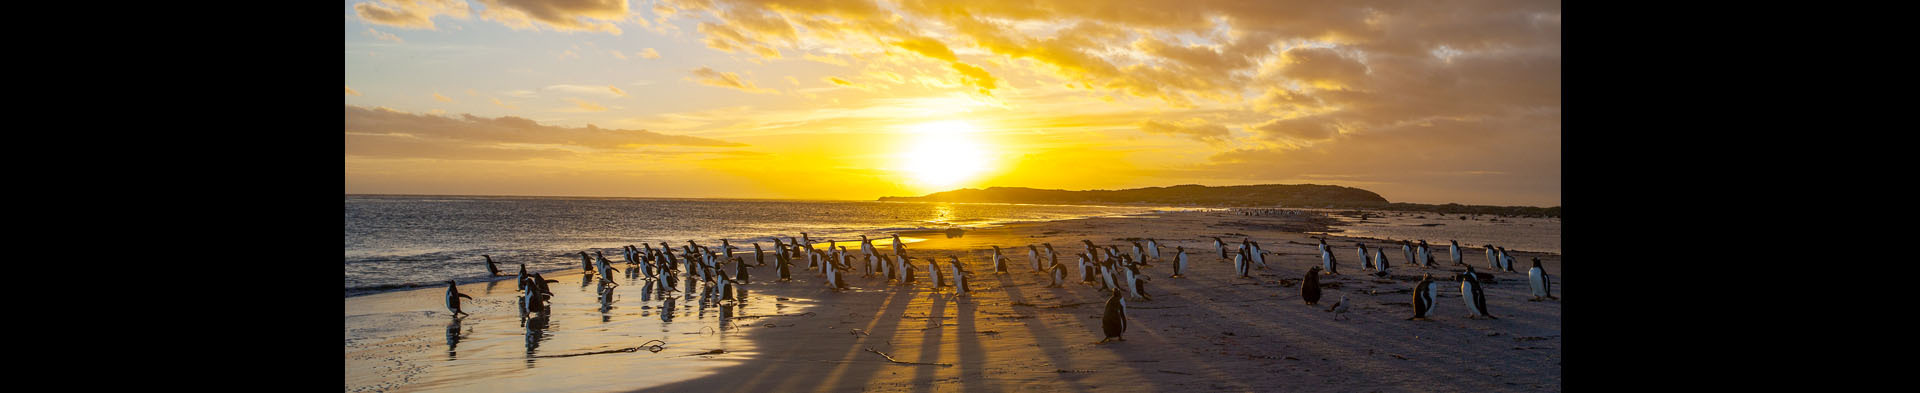 <div class='title'>           Penguin Sunrise         </div>                 <div class='description'>           Penguins on the Falkland Islands         </div>